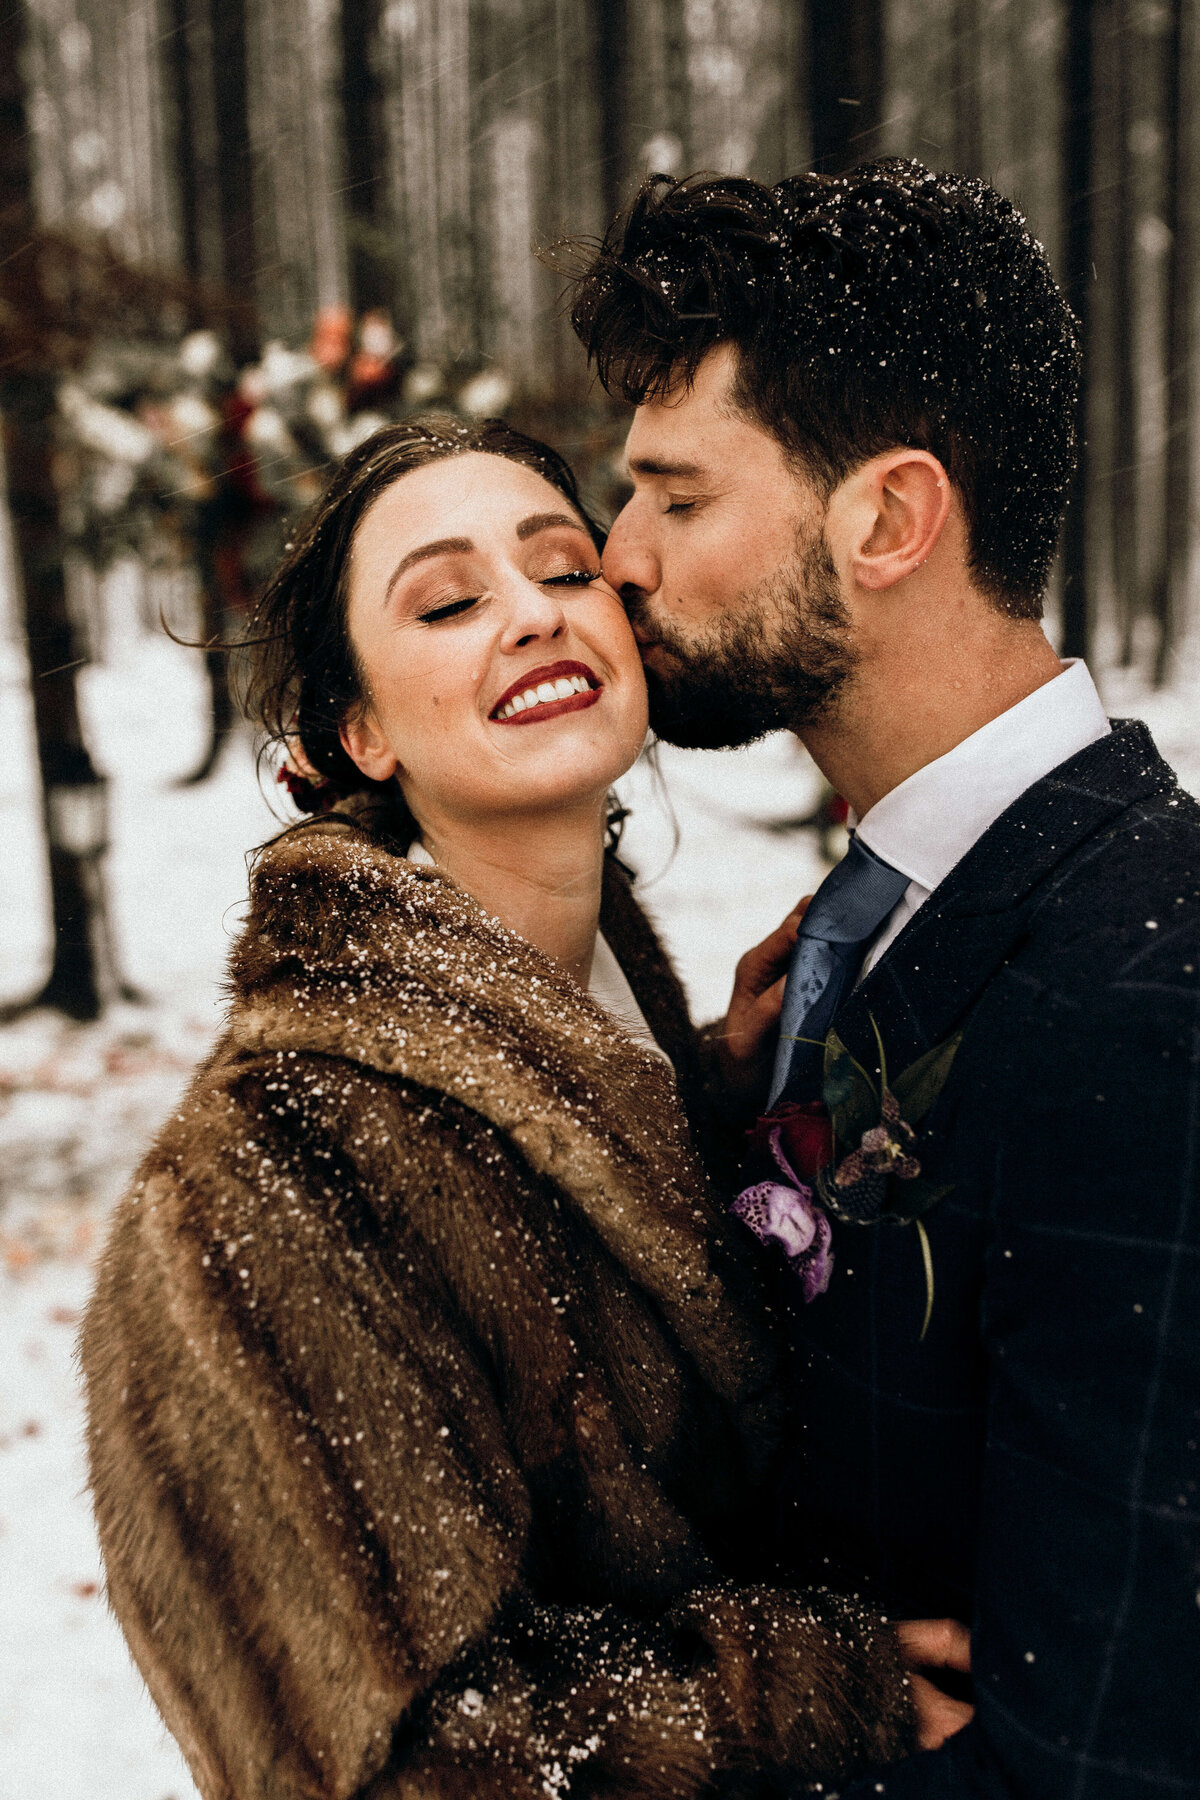 Styled Shoot - Winter Wonderland - Duitsland - 2019 3118